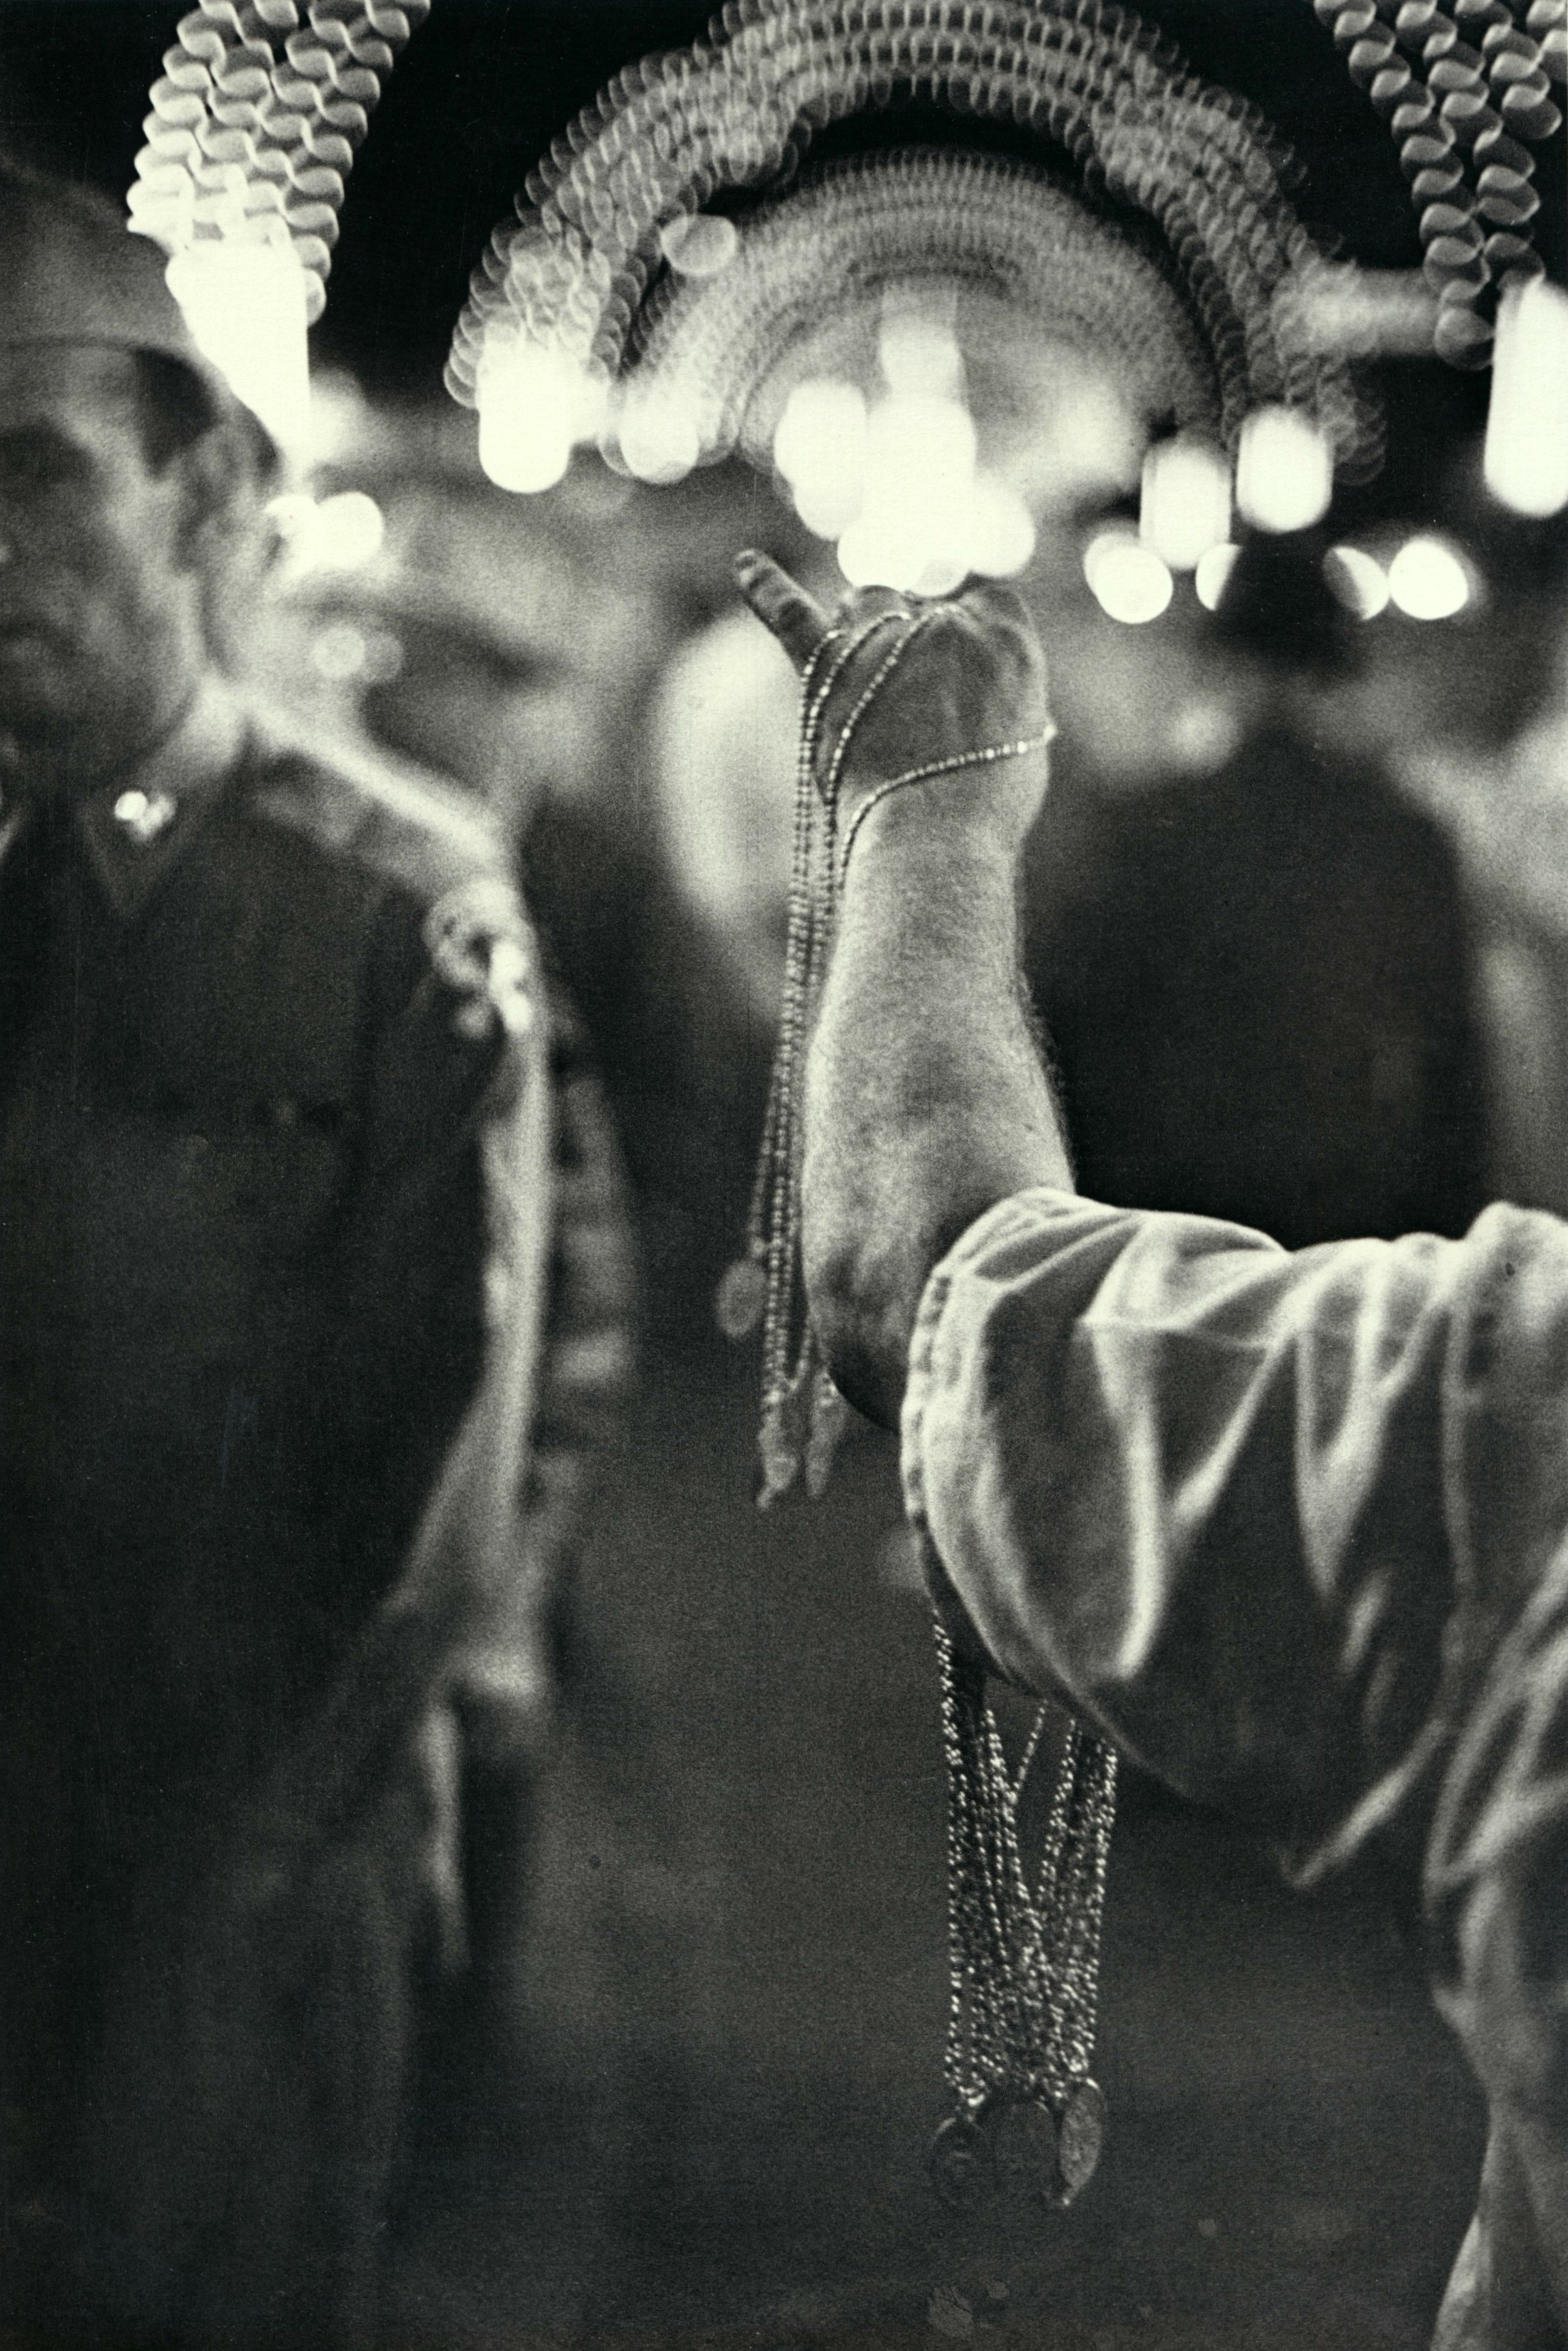 Medals, New York, 1951